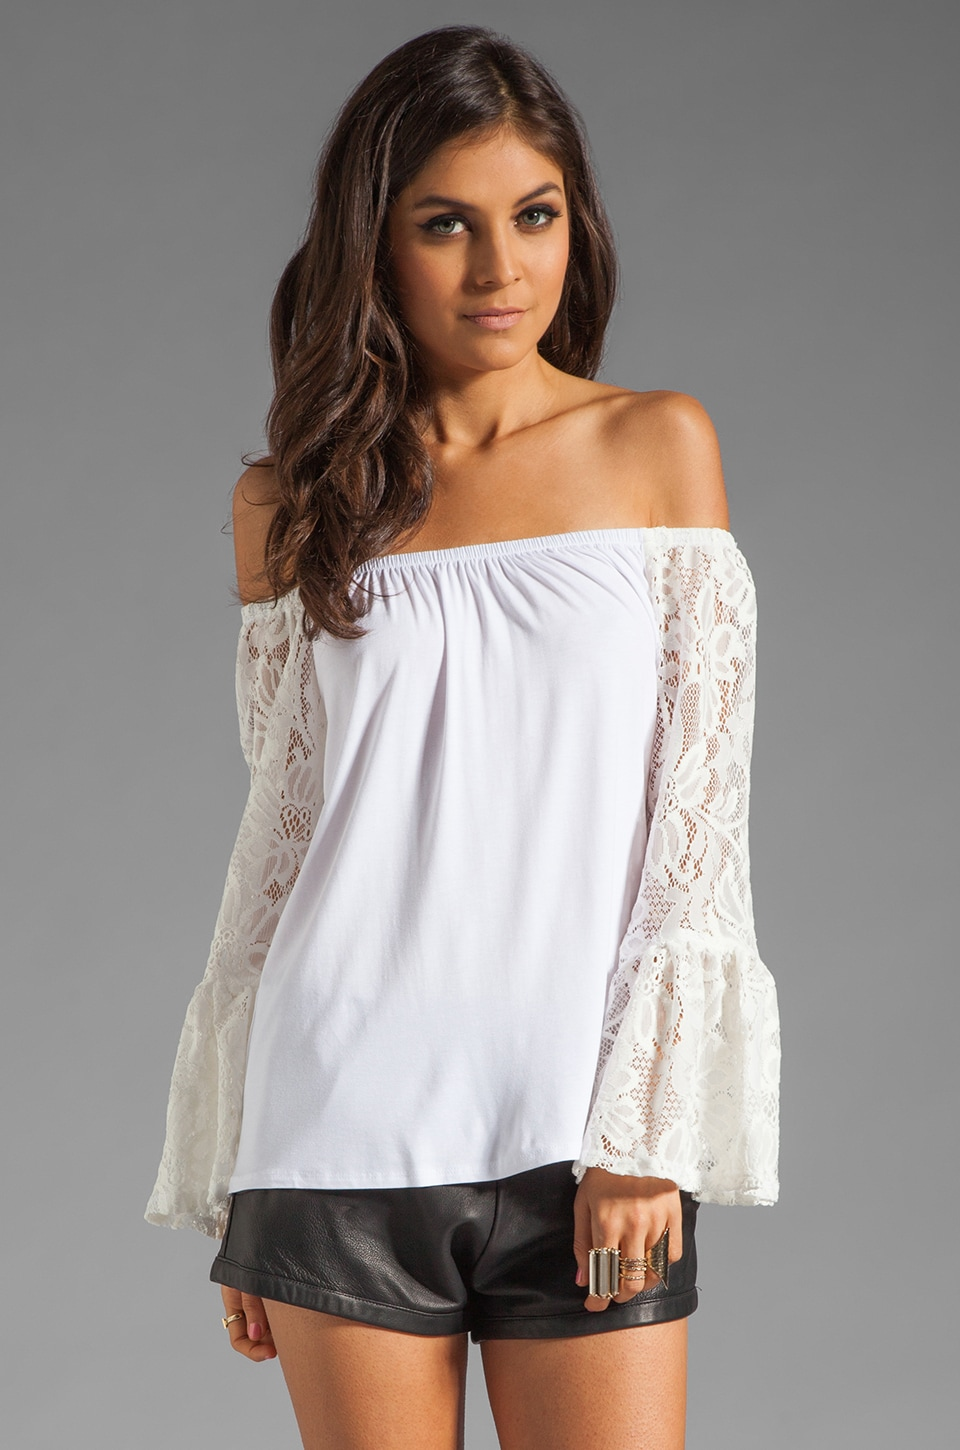 VAVA by Joy Han Skyler Off the Shoulder Top in White